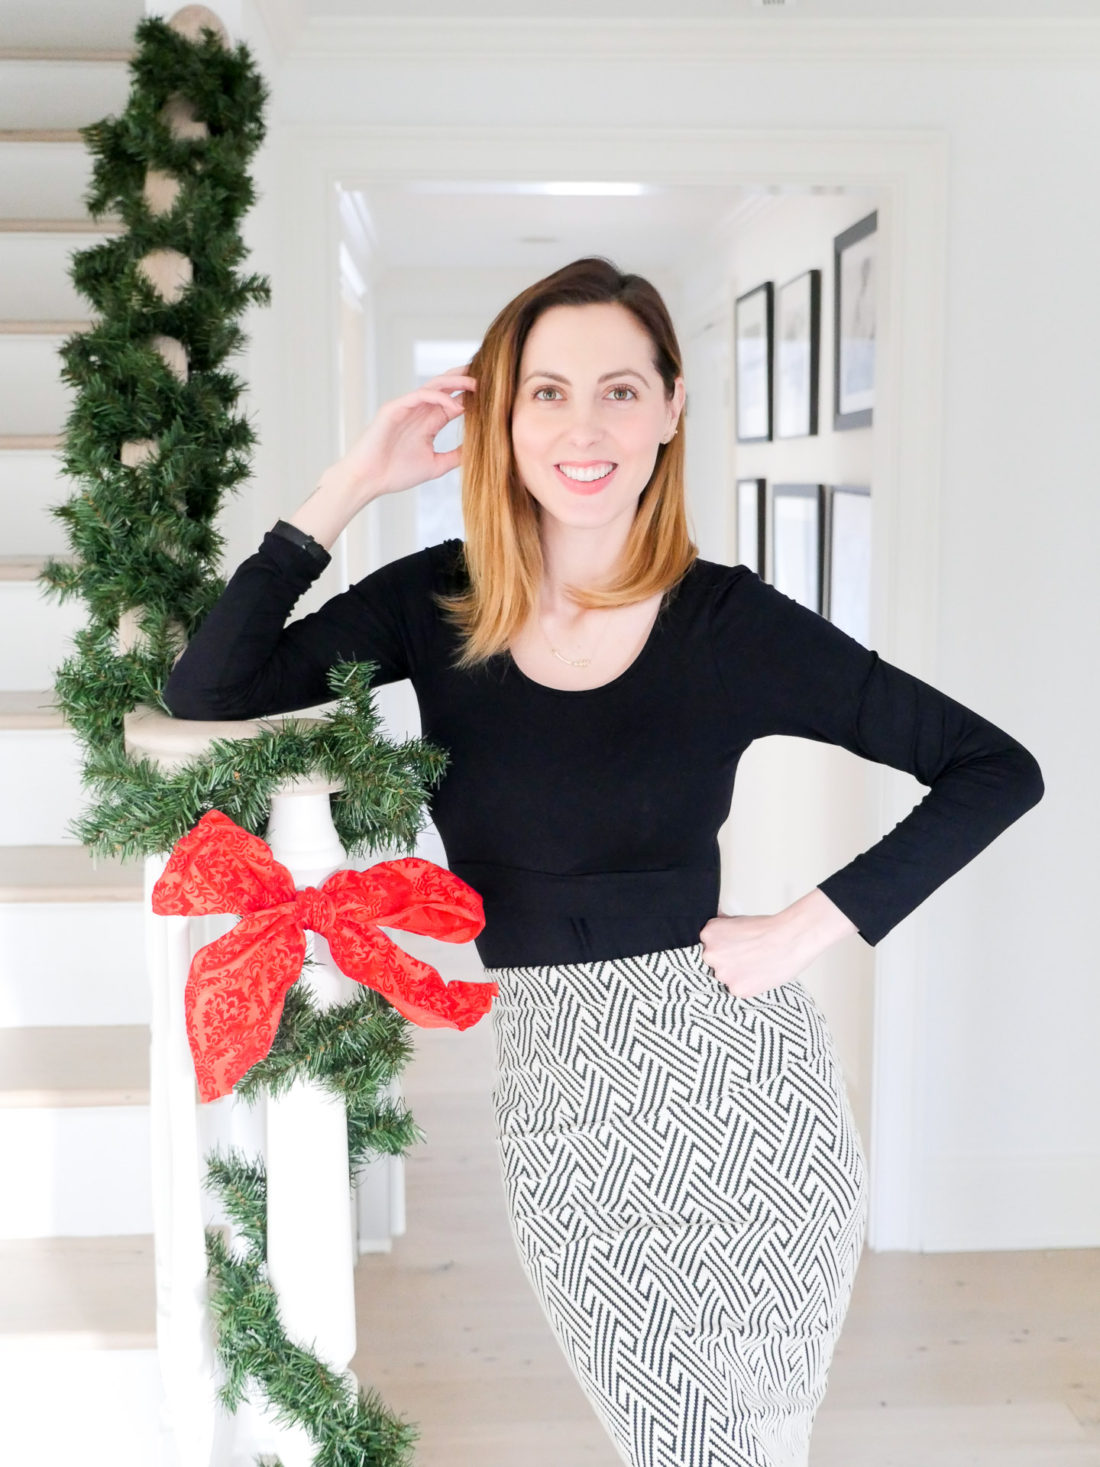 Eva Amurri Martino standing in the foyer of her new Connecticut home at Christmas time